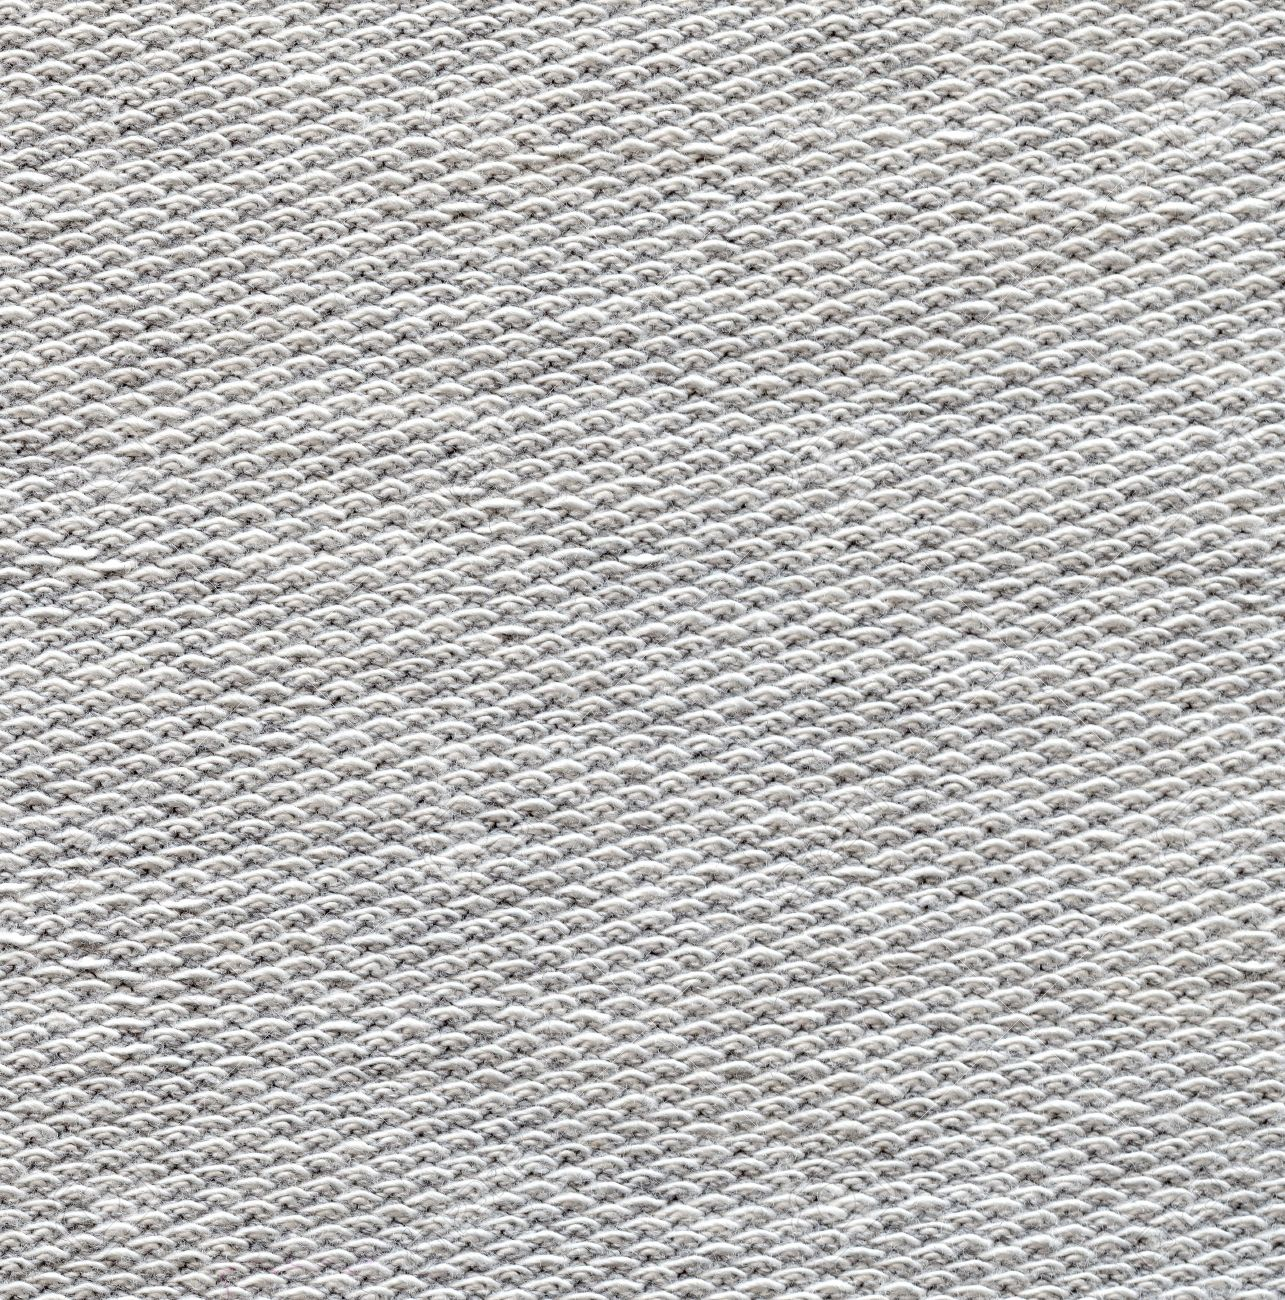 Fabric Texture Light Gray Color Textile Background Stock Photo 1285x1300